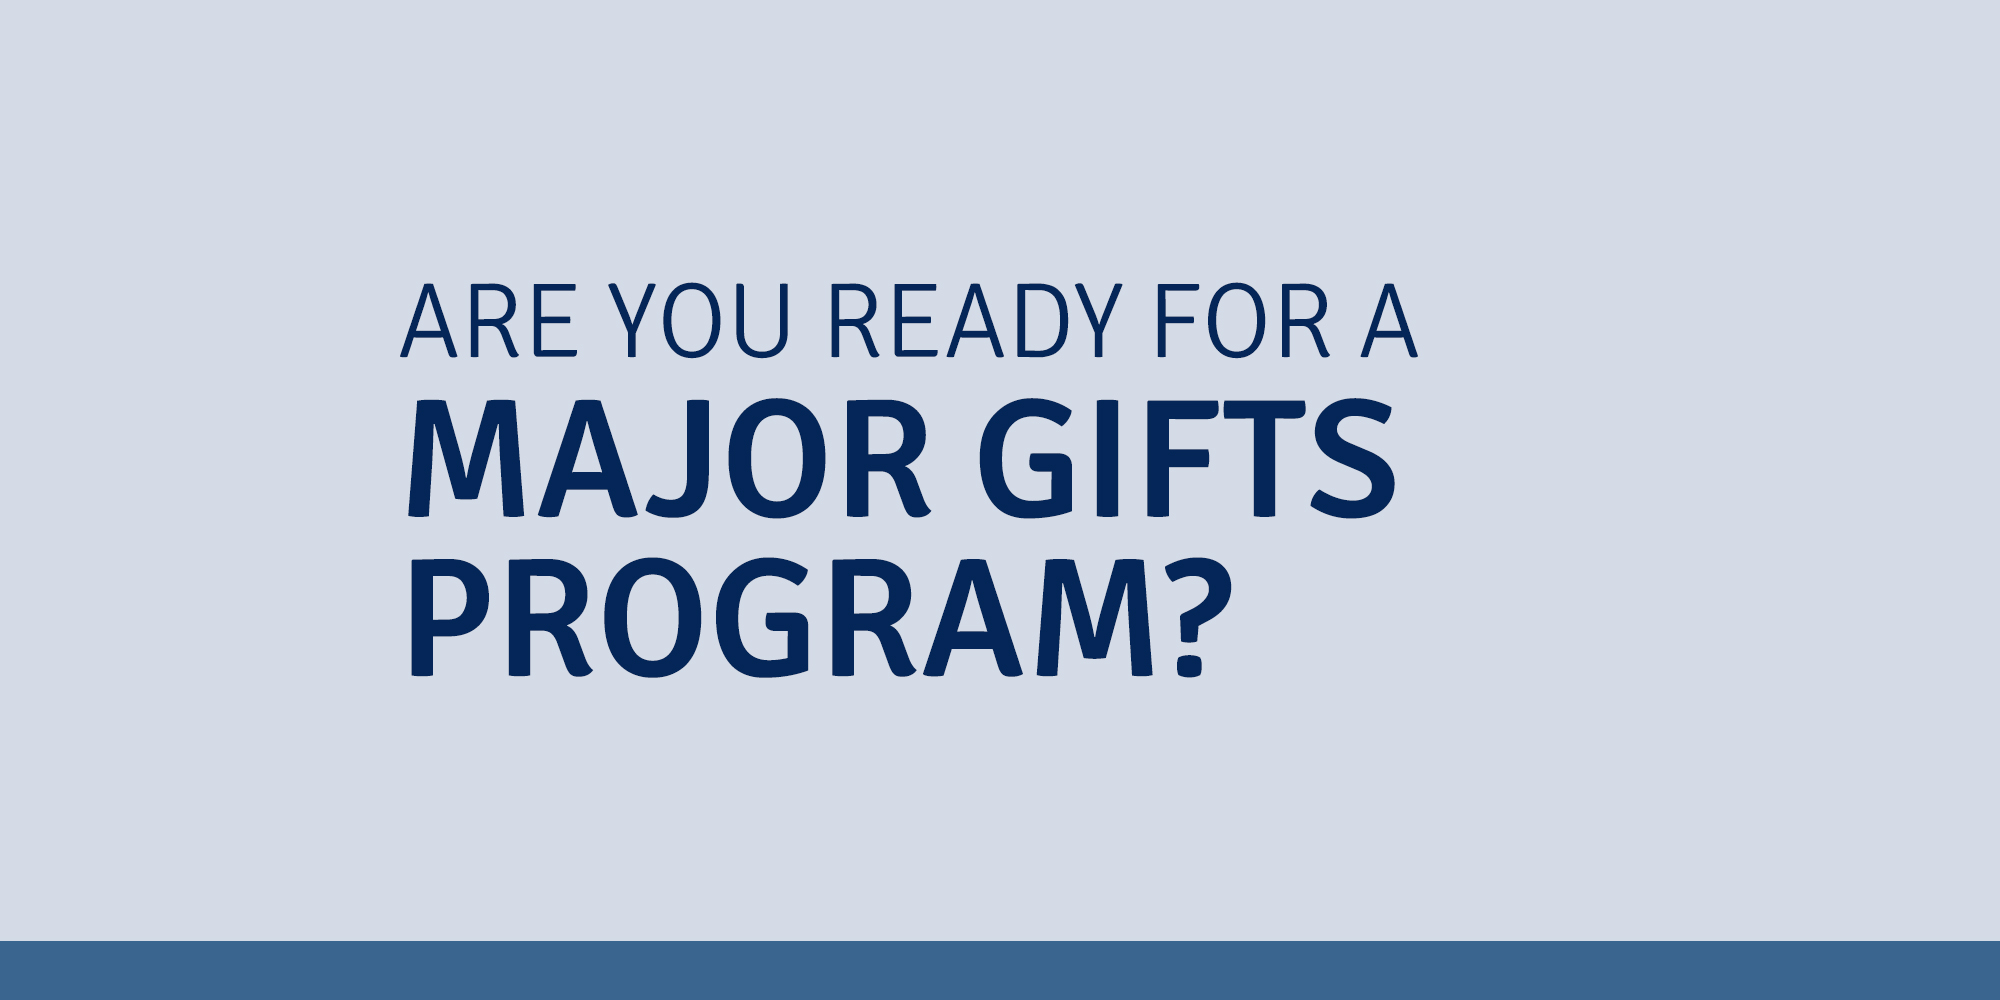 Development Dilemma: When to Start a Major Gifts Program